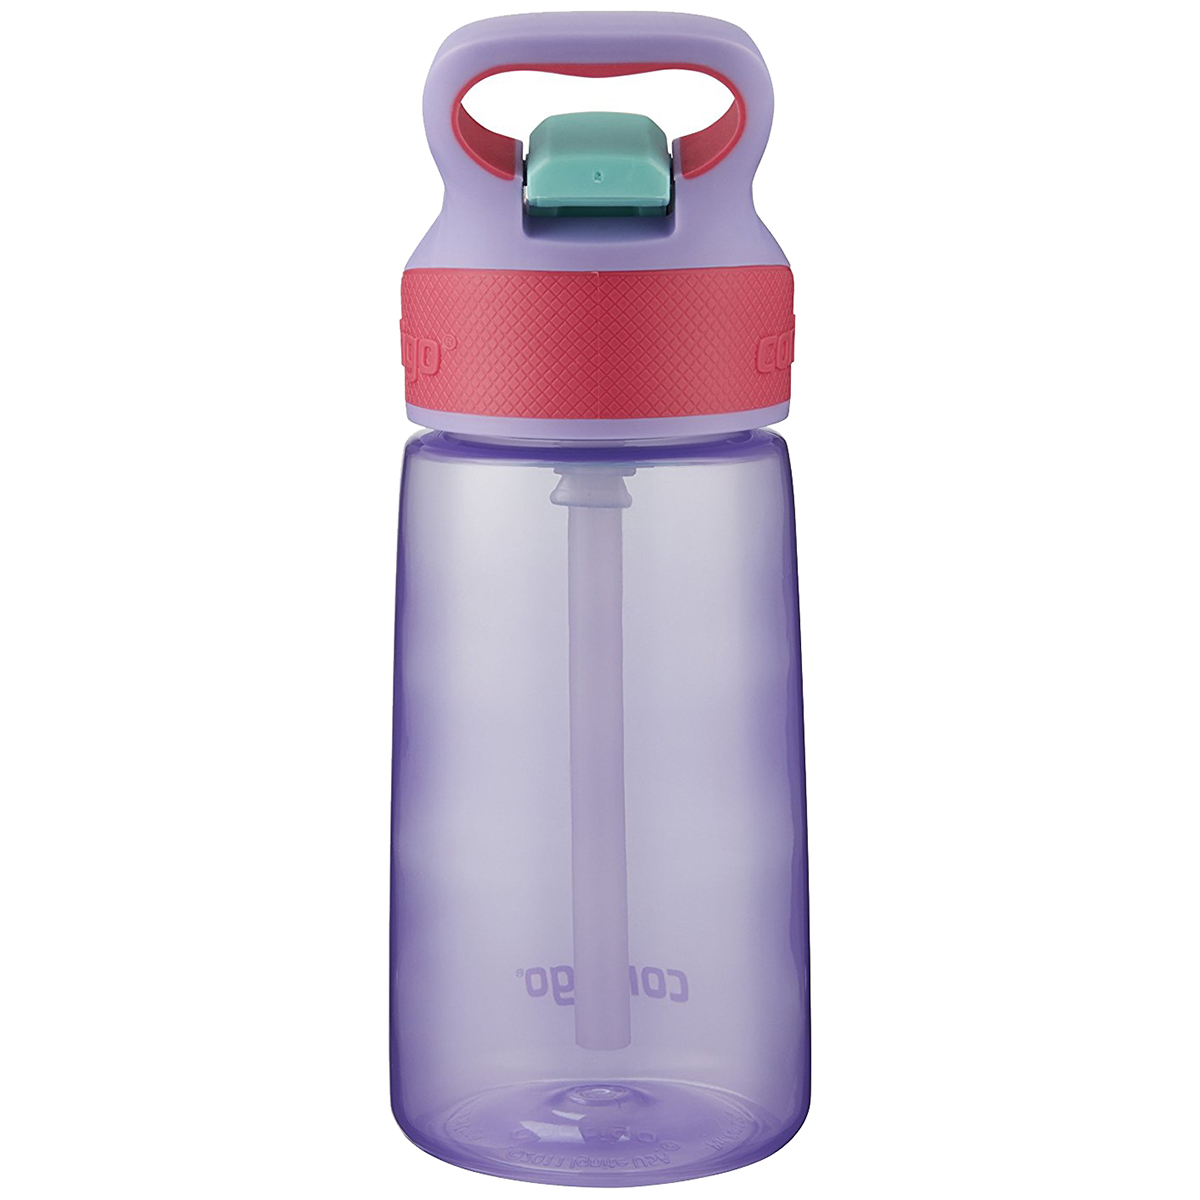 Contigo-14-oz-Kid-039-s-Striker-Autospout-Water-Bottle Indexbild 58